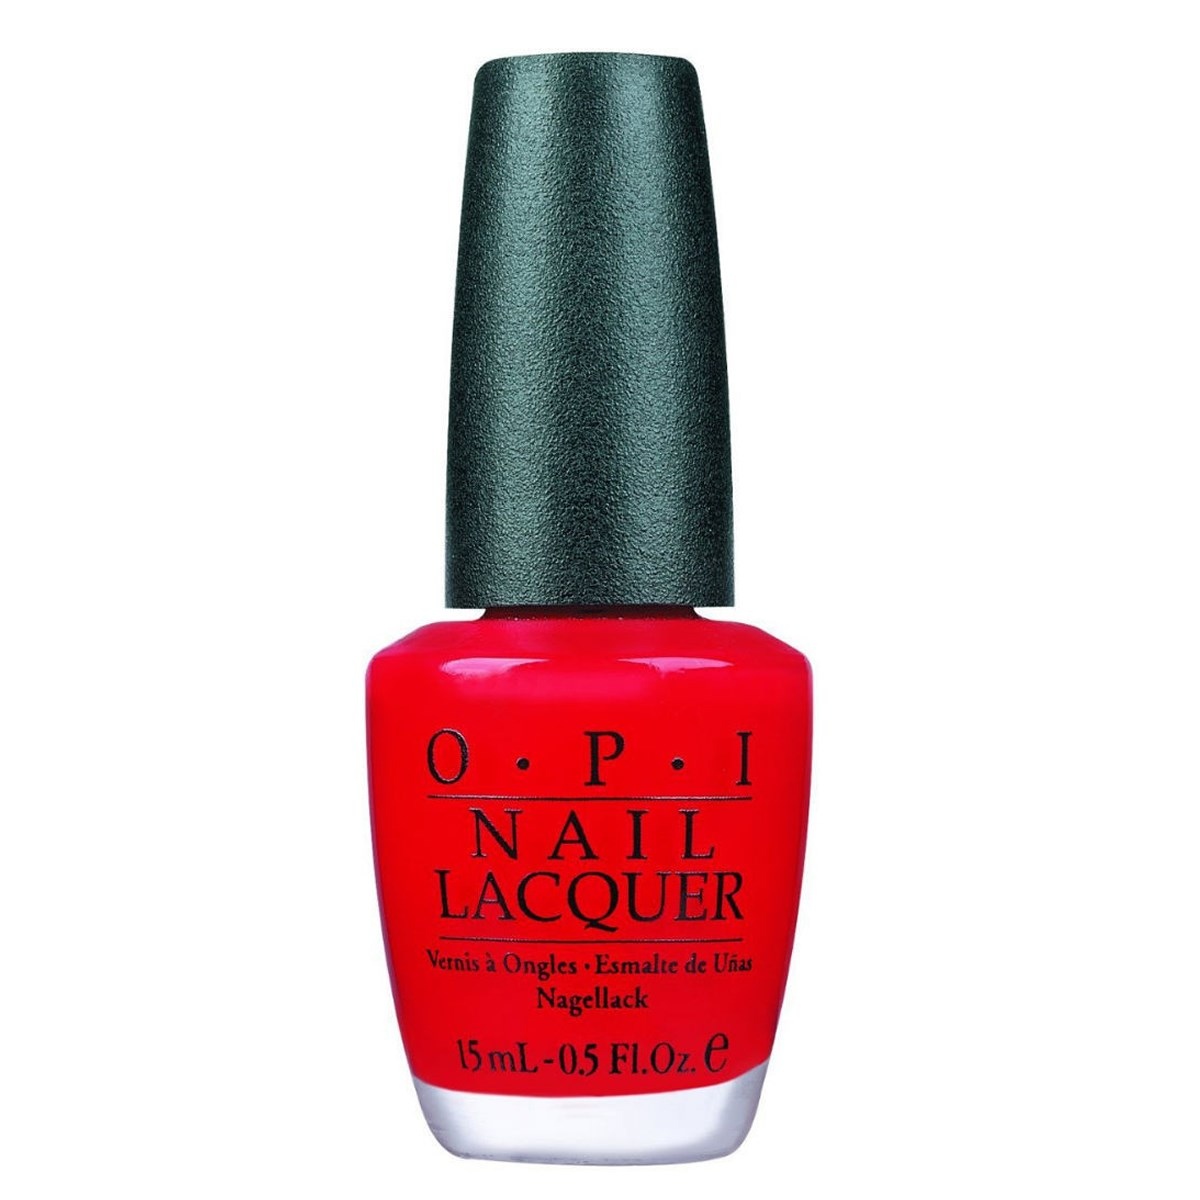 OPI Classic Nail Lacquer The thrill of Brazil